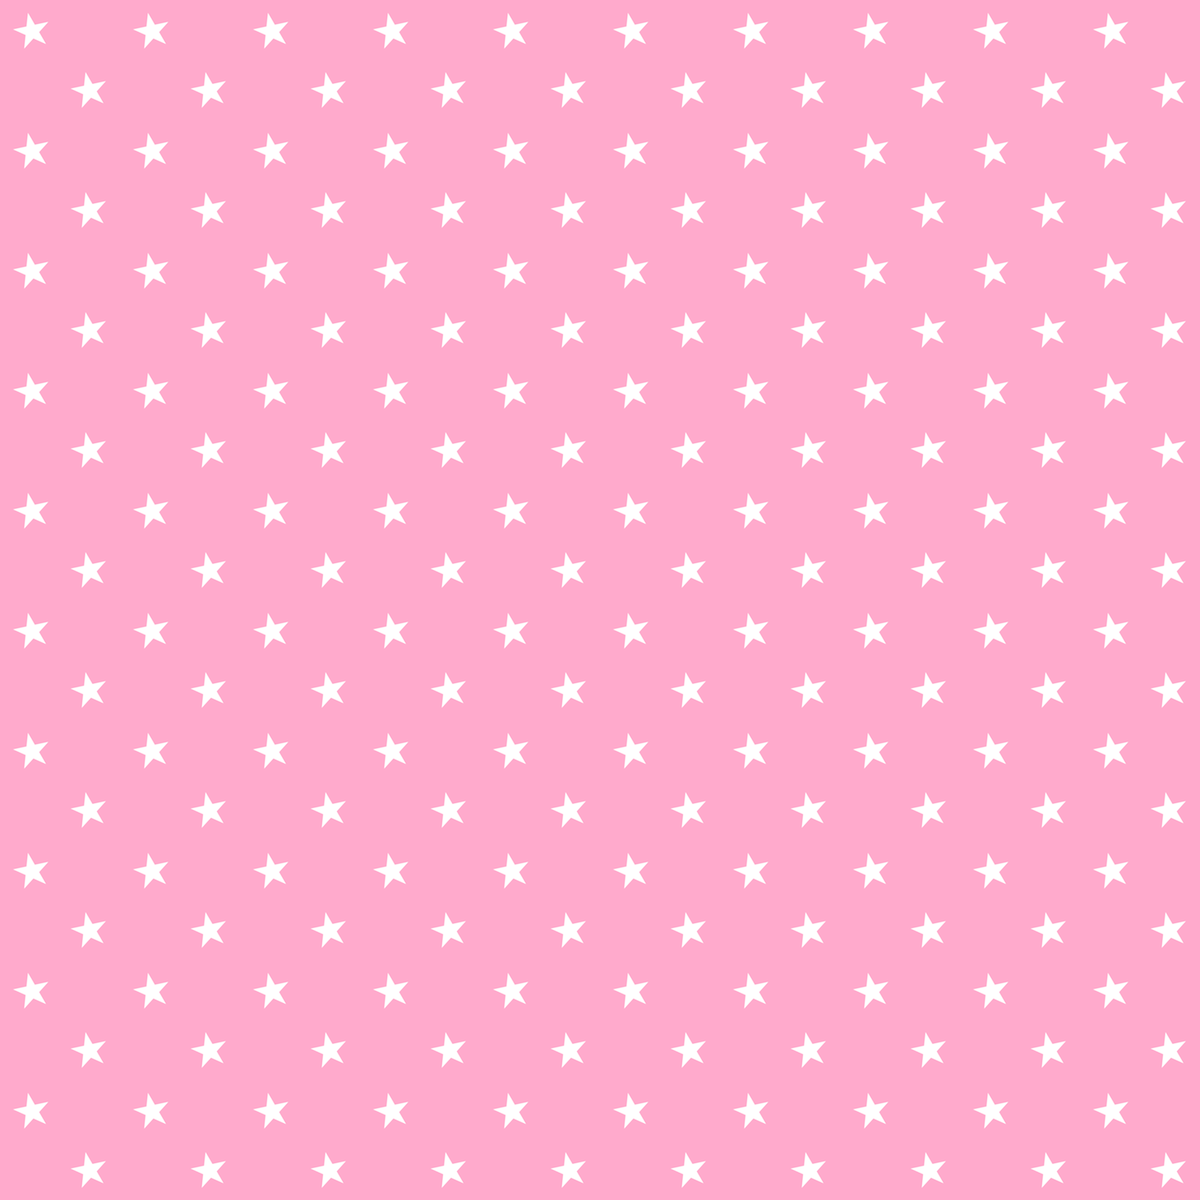 pink_star_paper